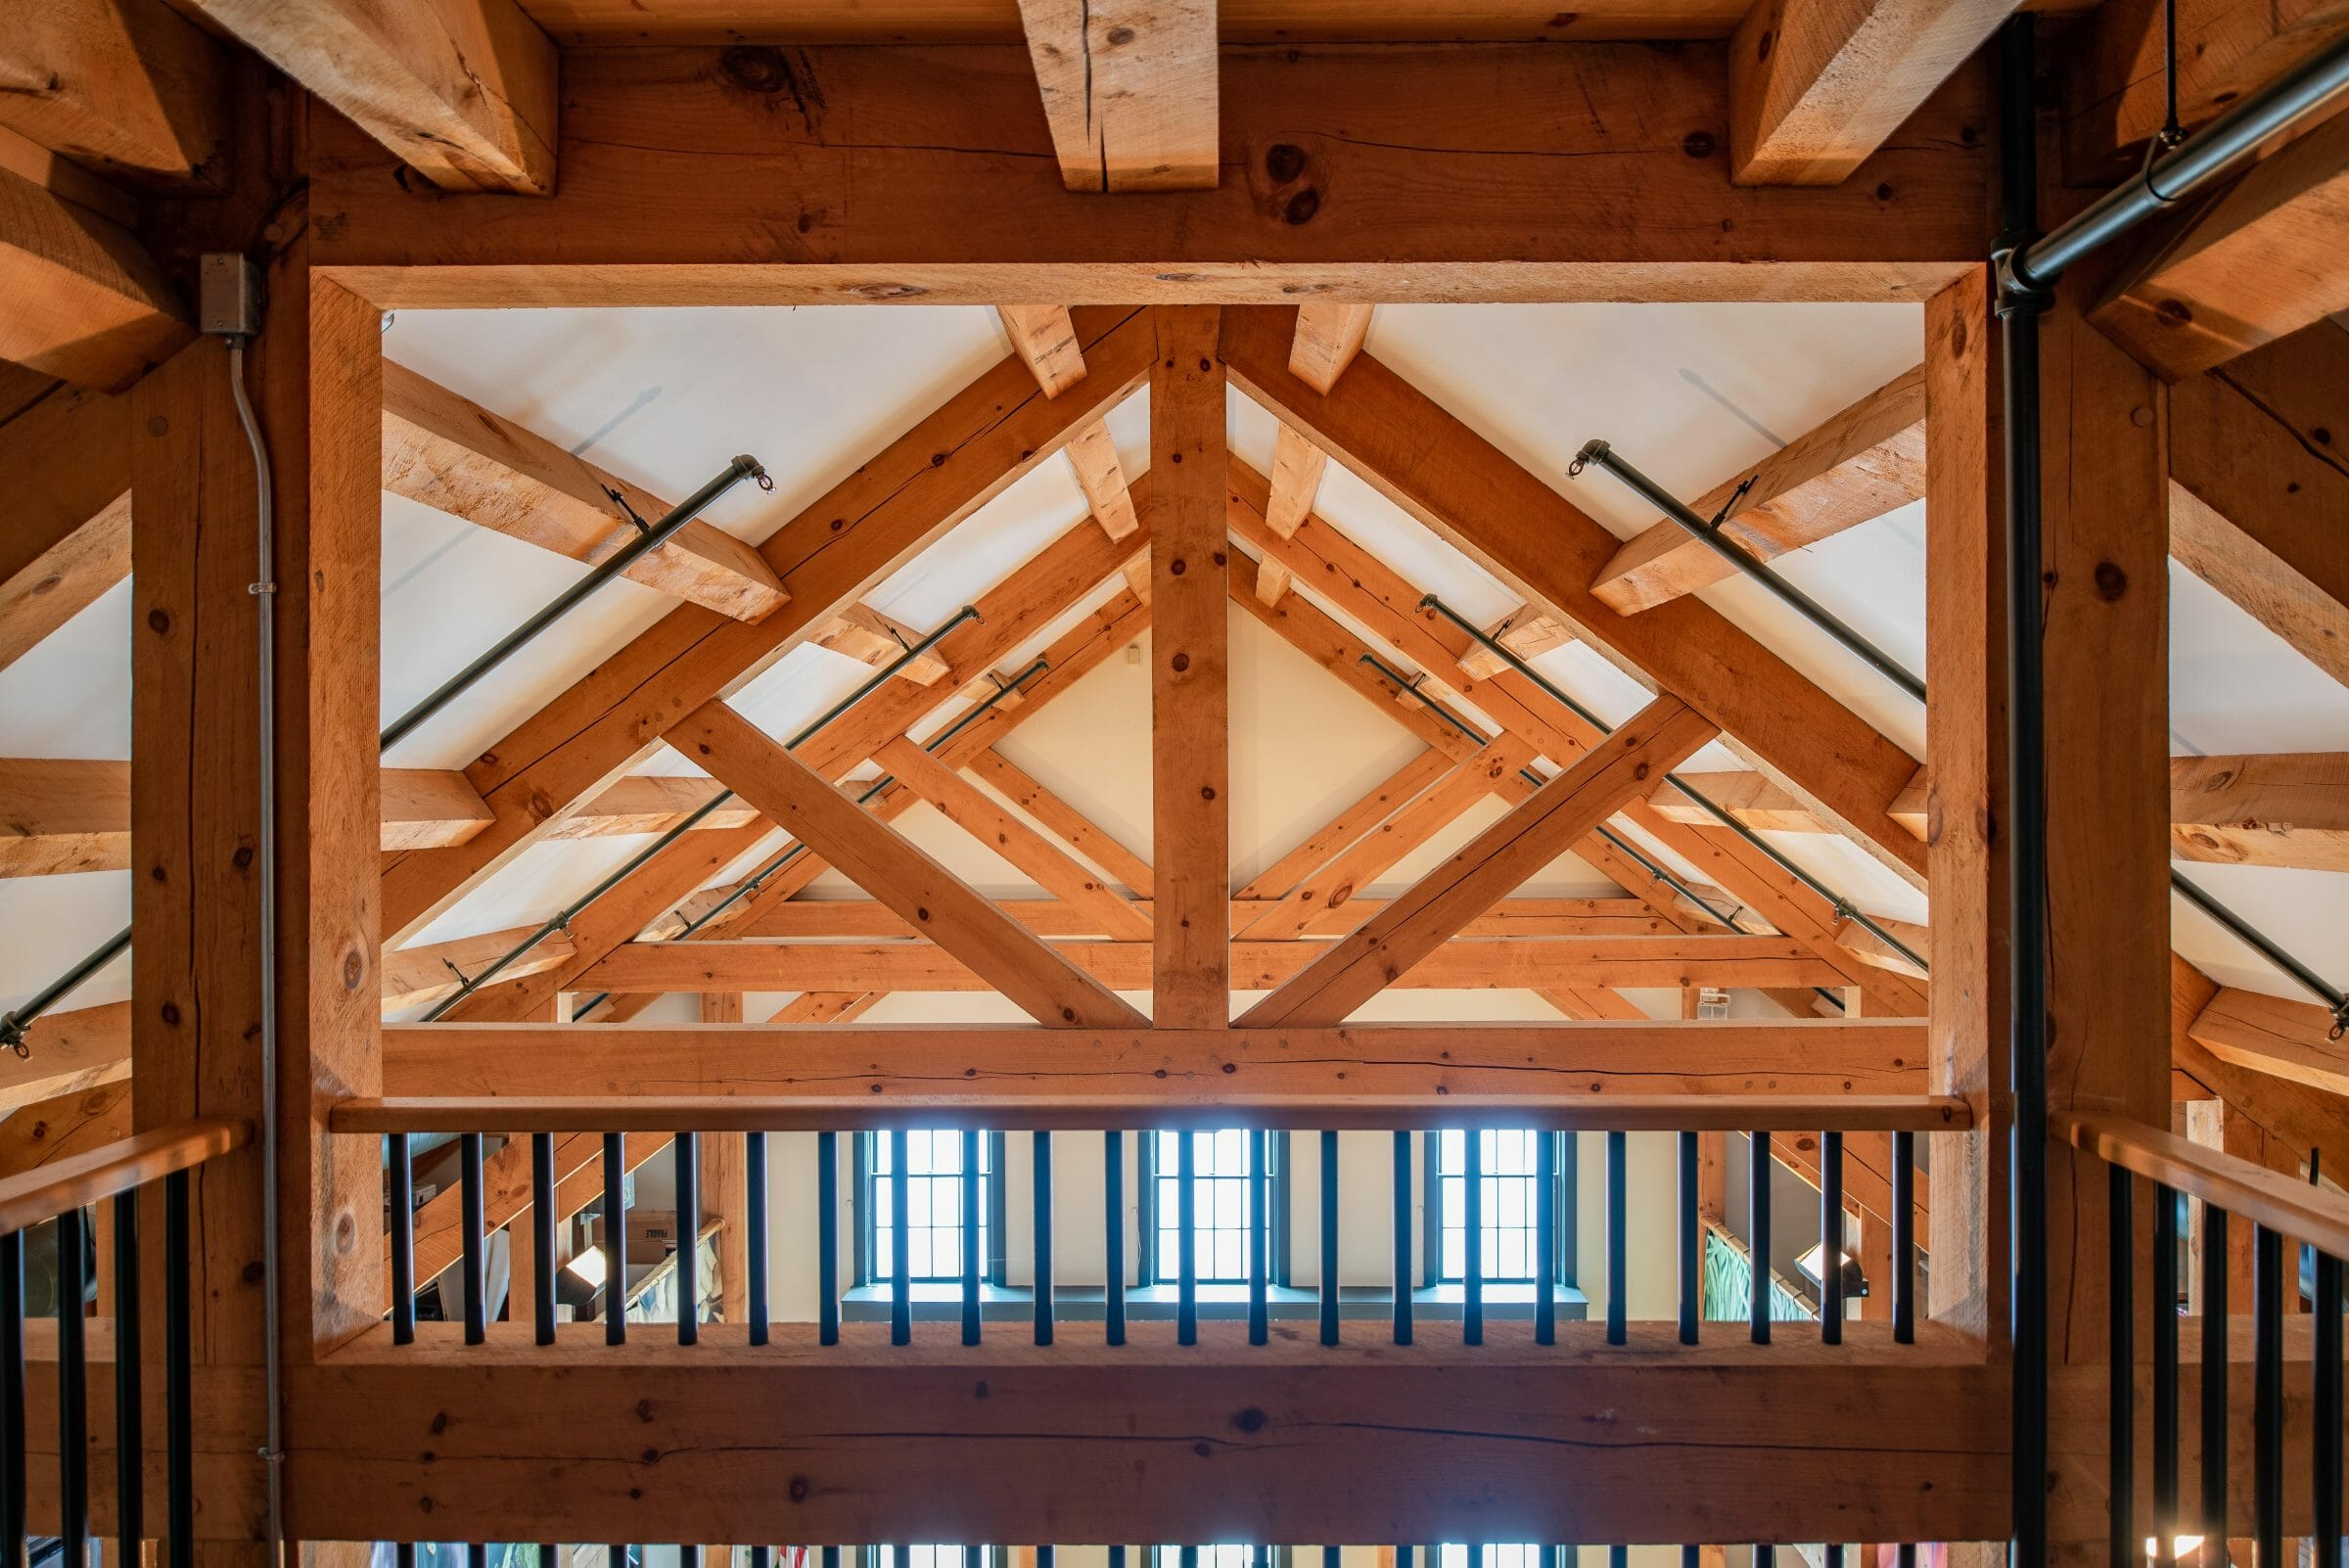 Brigham Hill Barn Interior with Rough Sawn Timber Trusses from Hemlock and White Pine